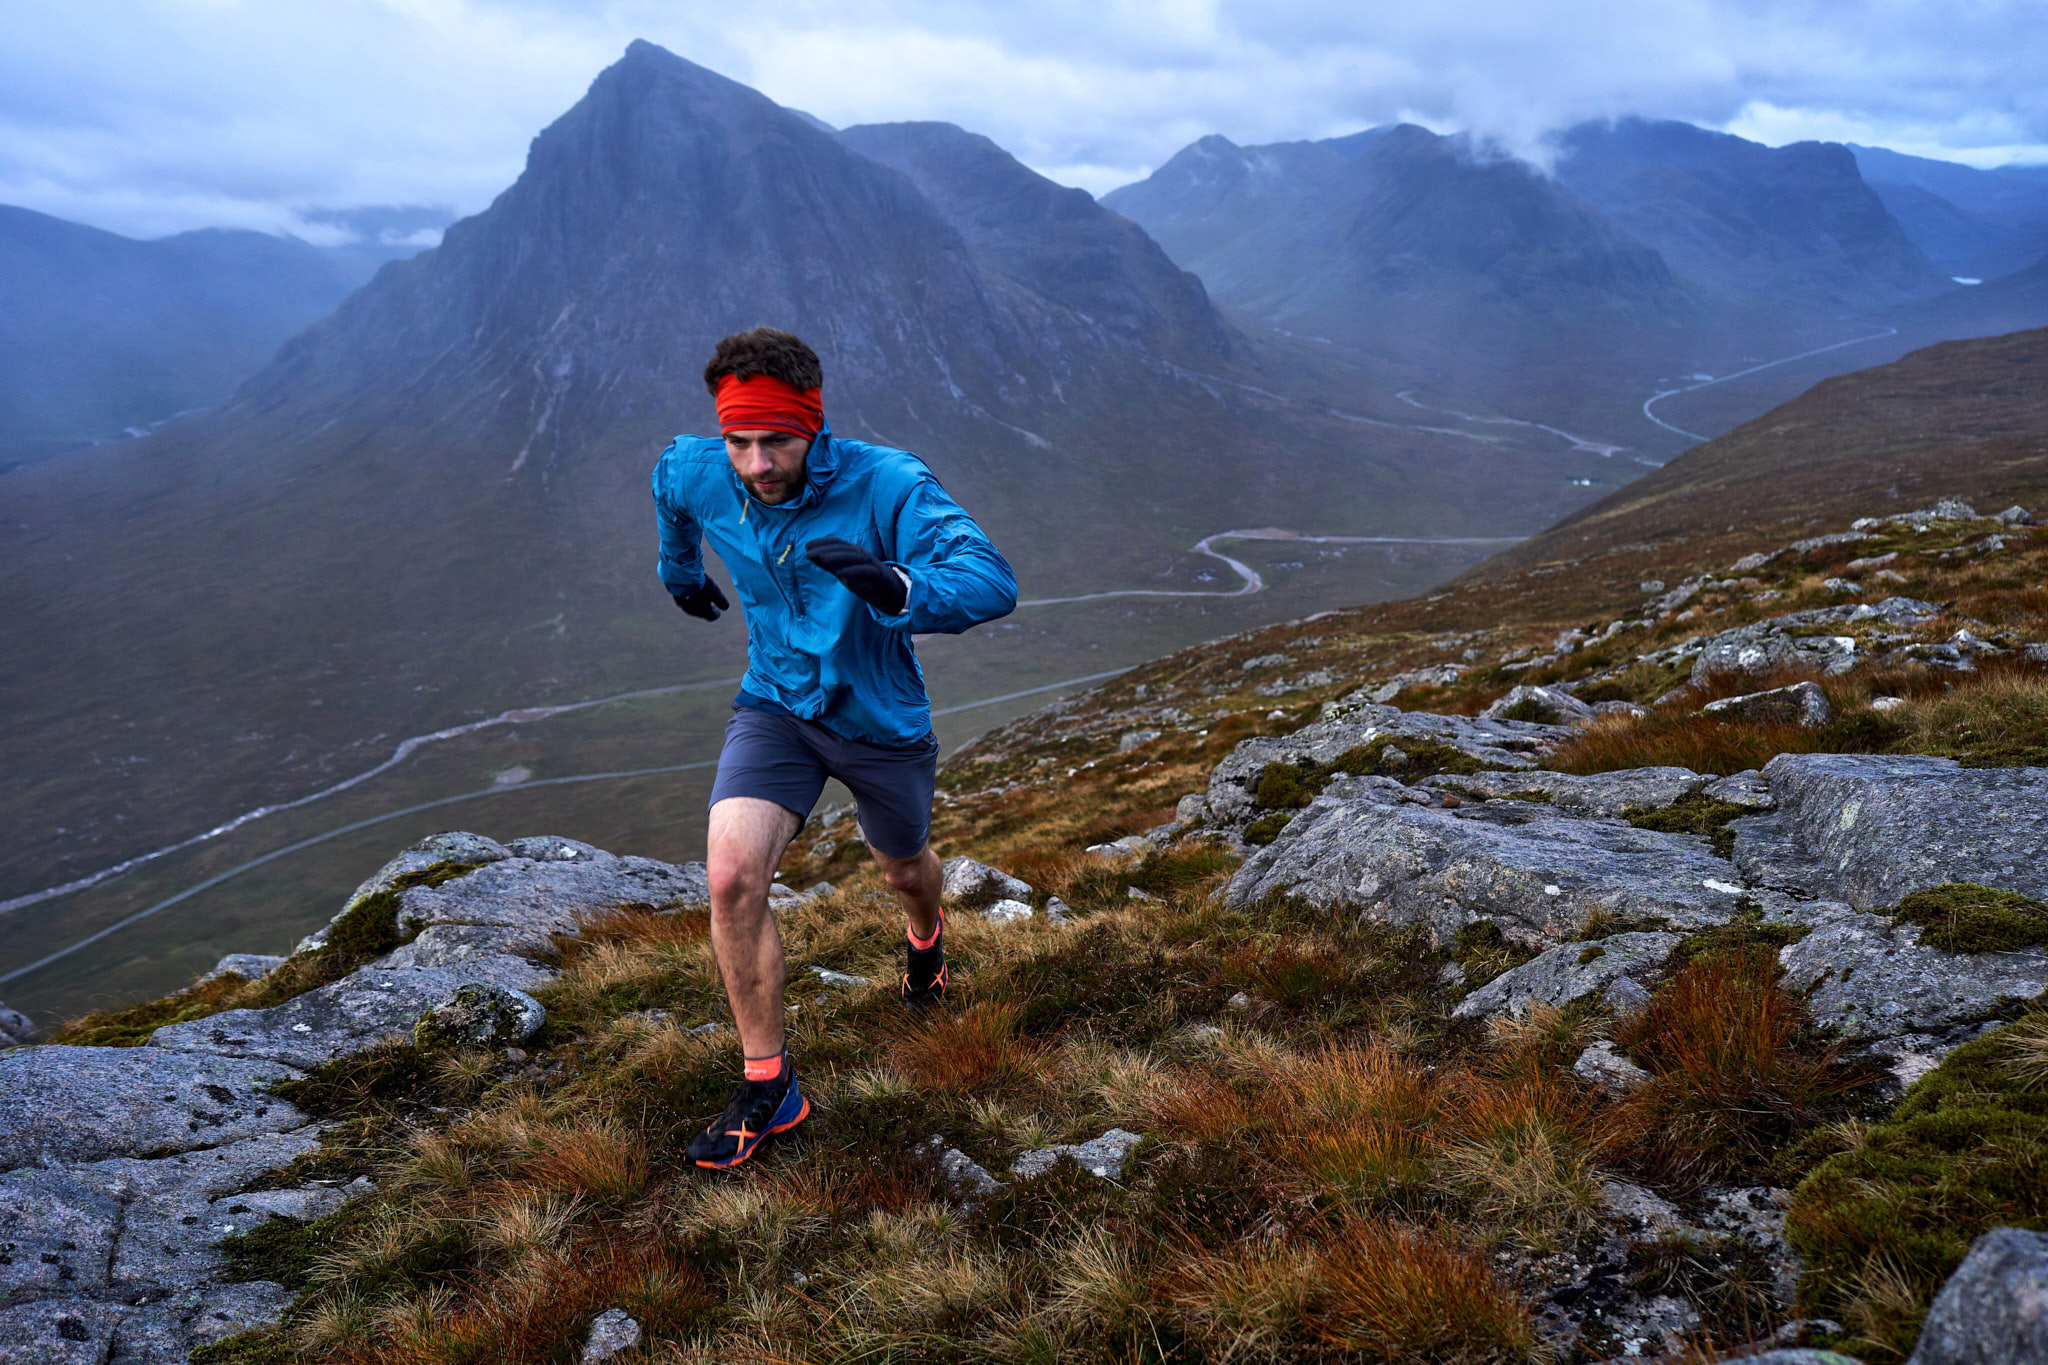 Greg Boswell running into a fierce headwind on the upper slopes of Beinn a'Chrulaiste